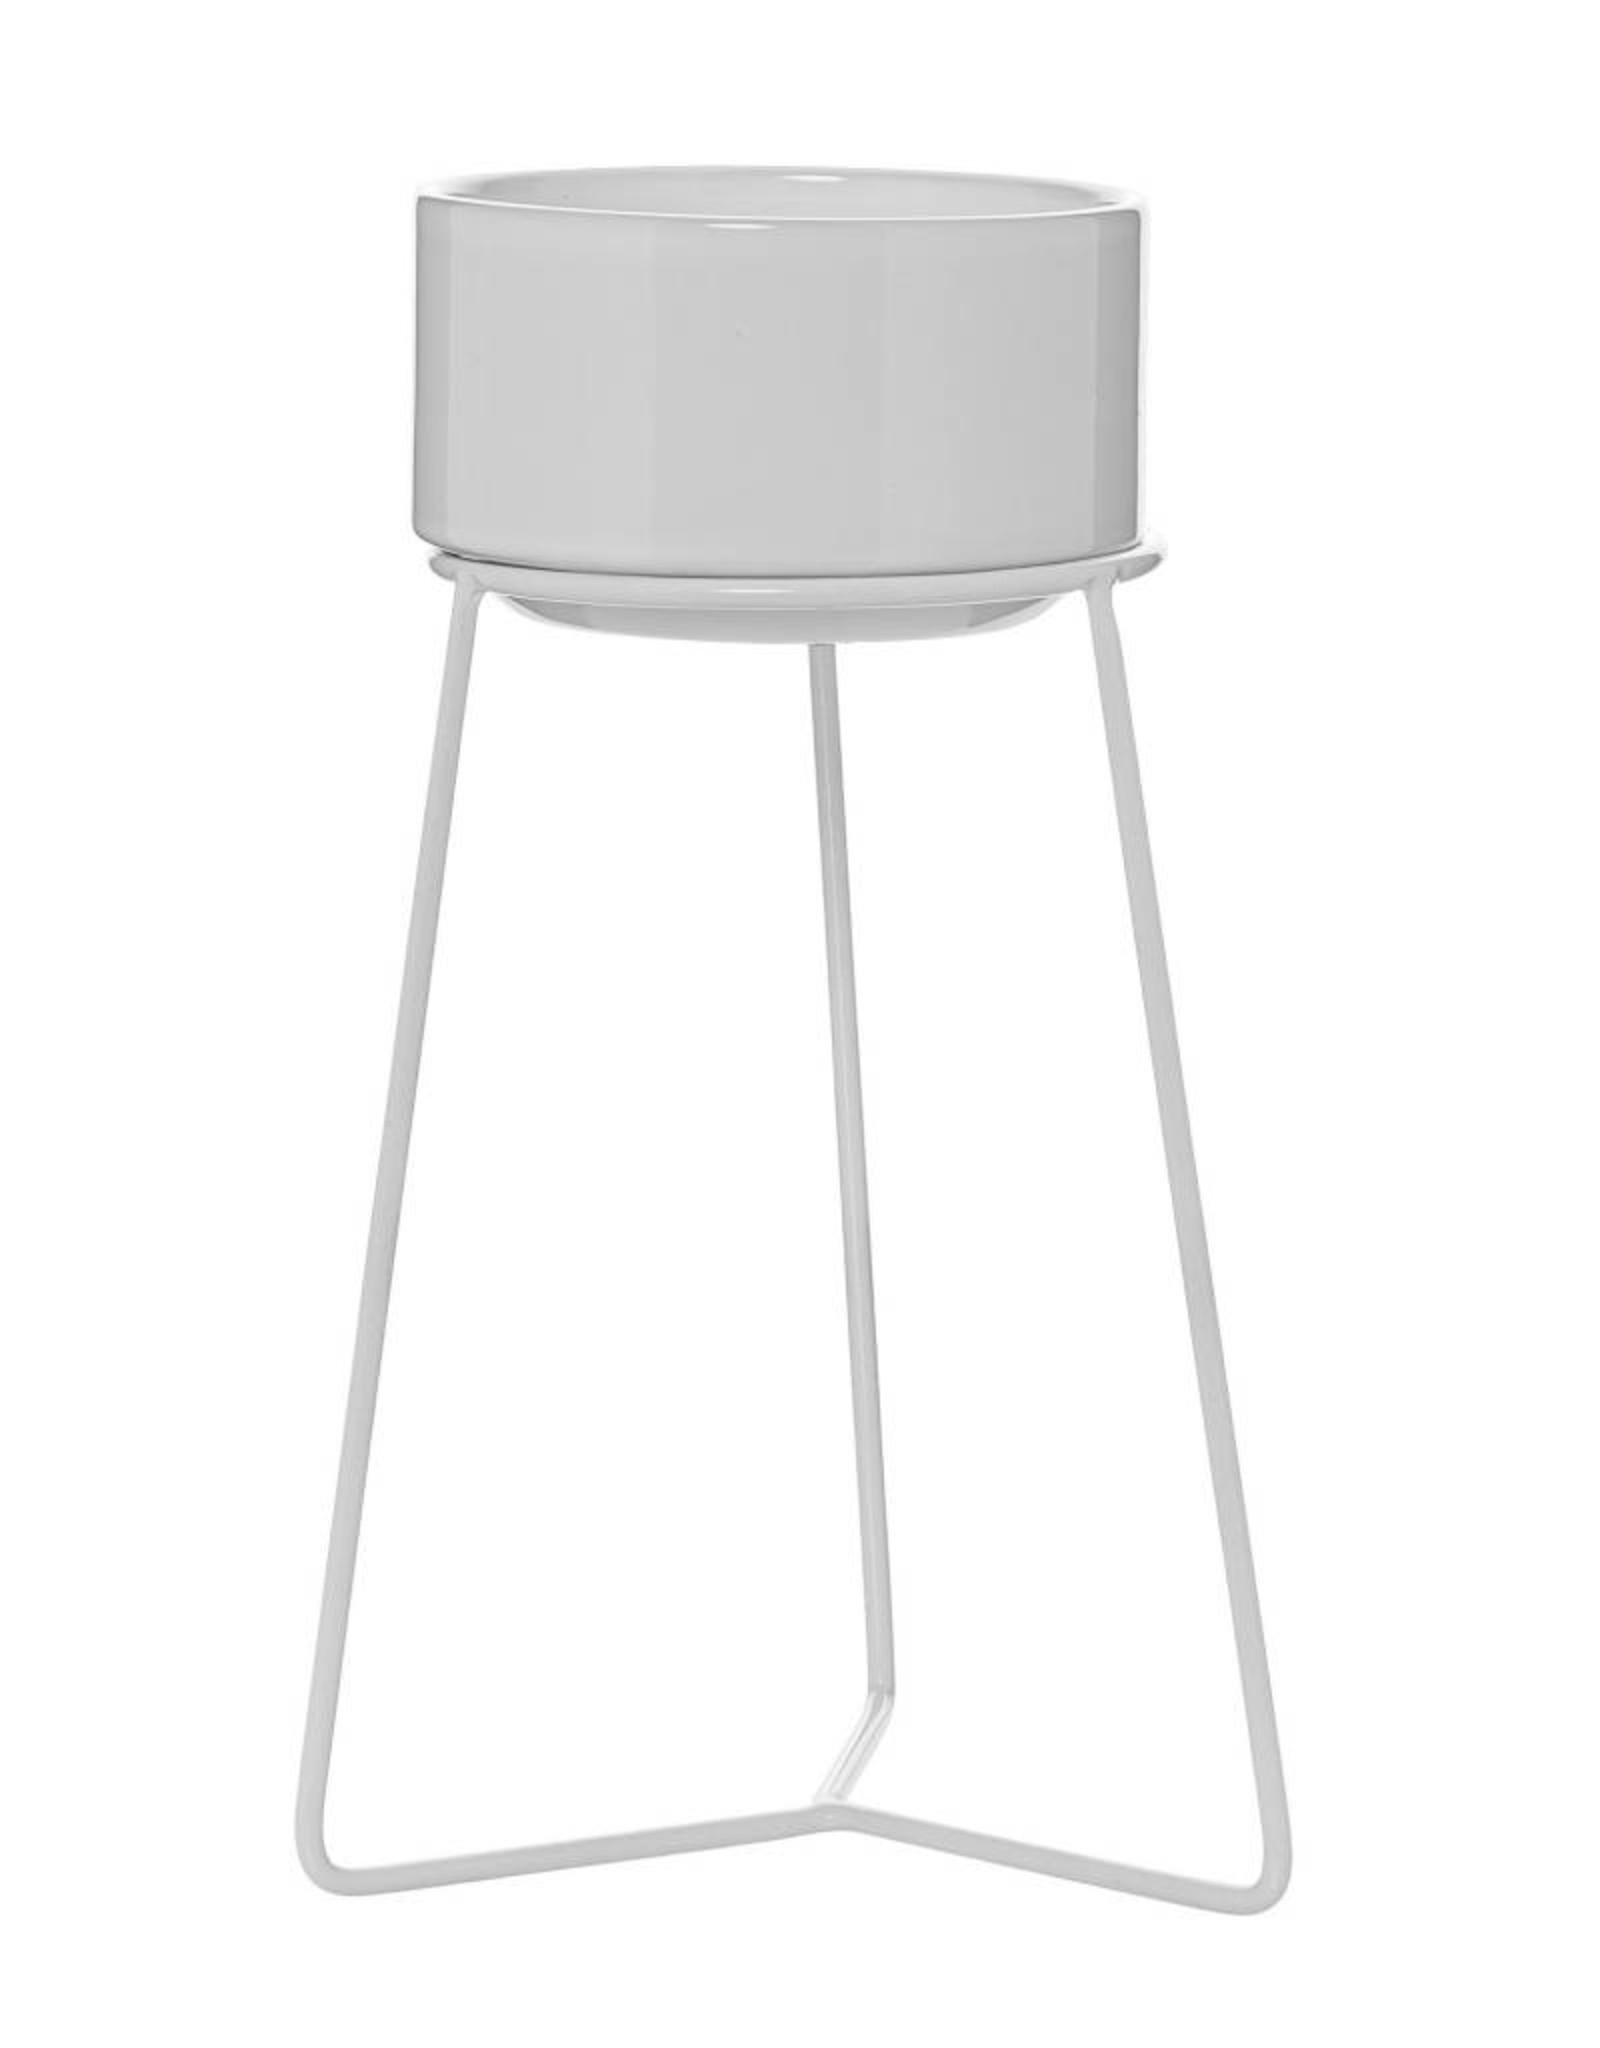 Flower Pot w/ White Stand